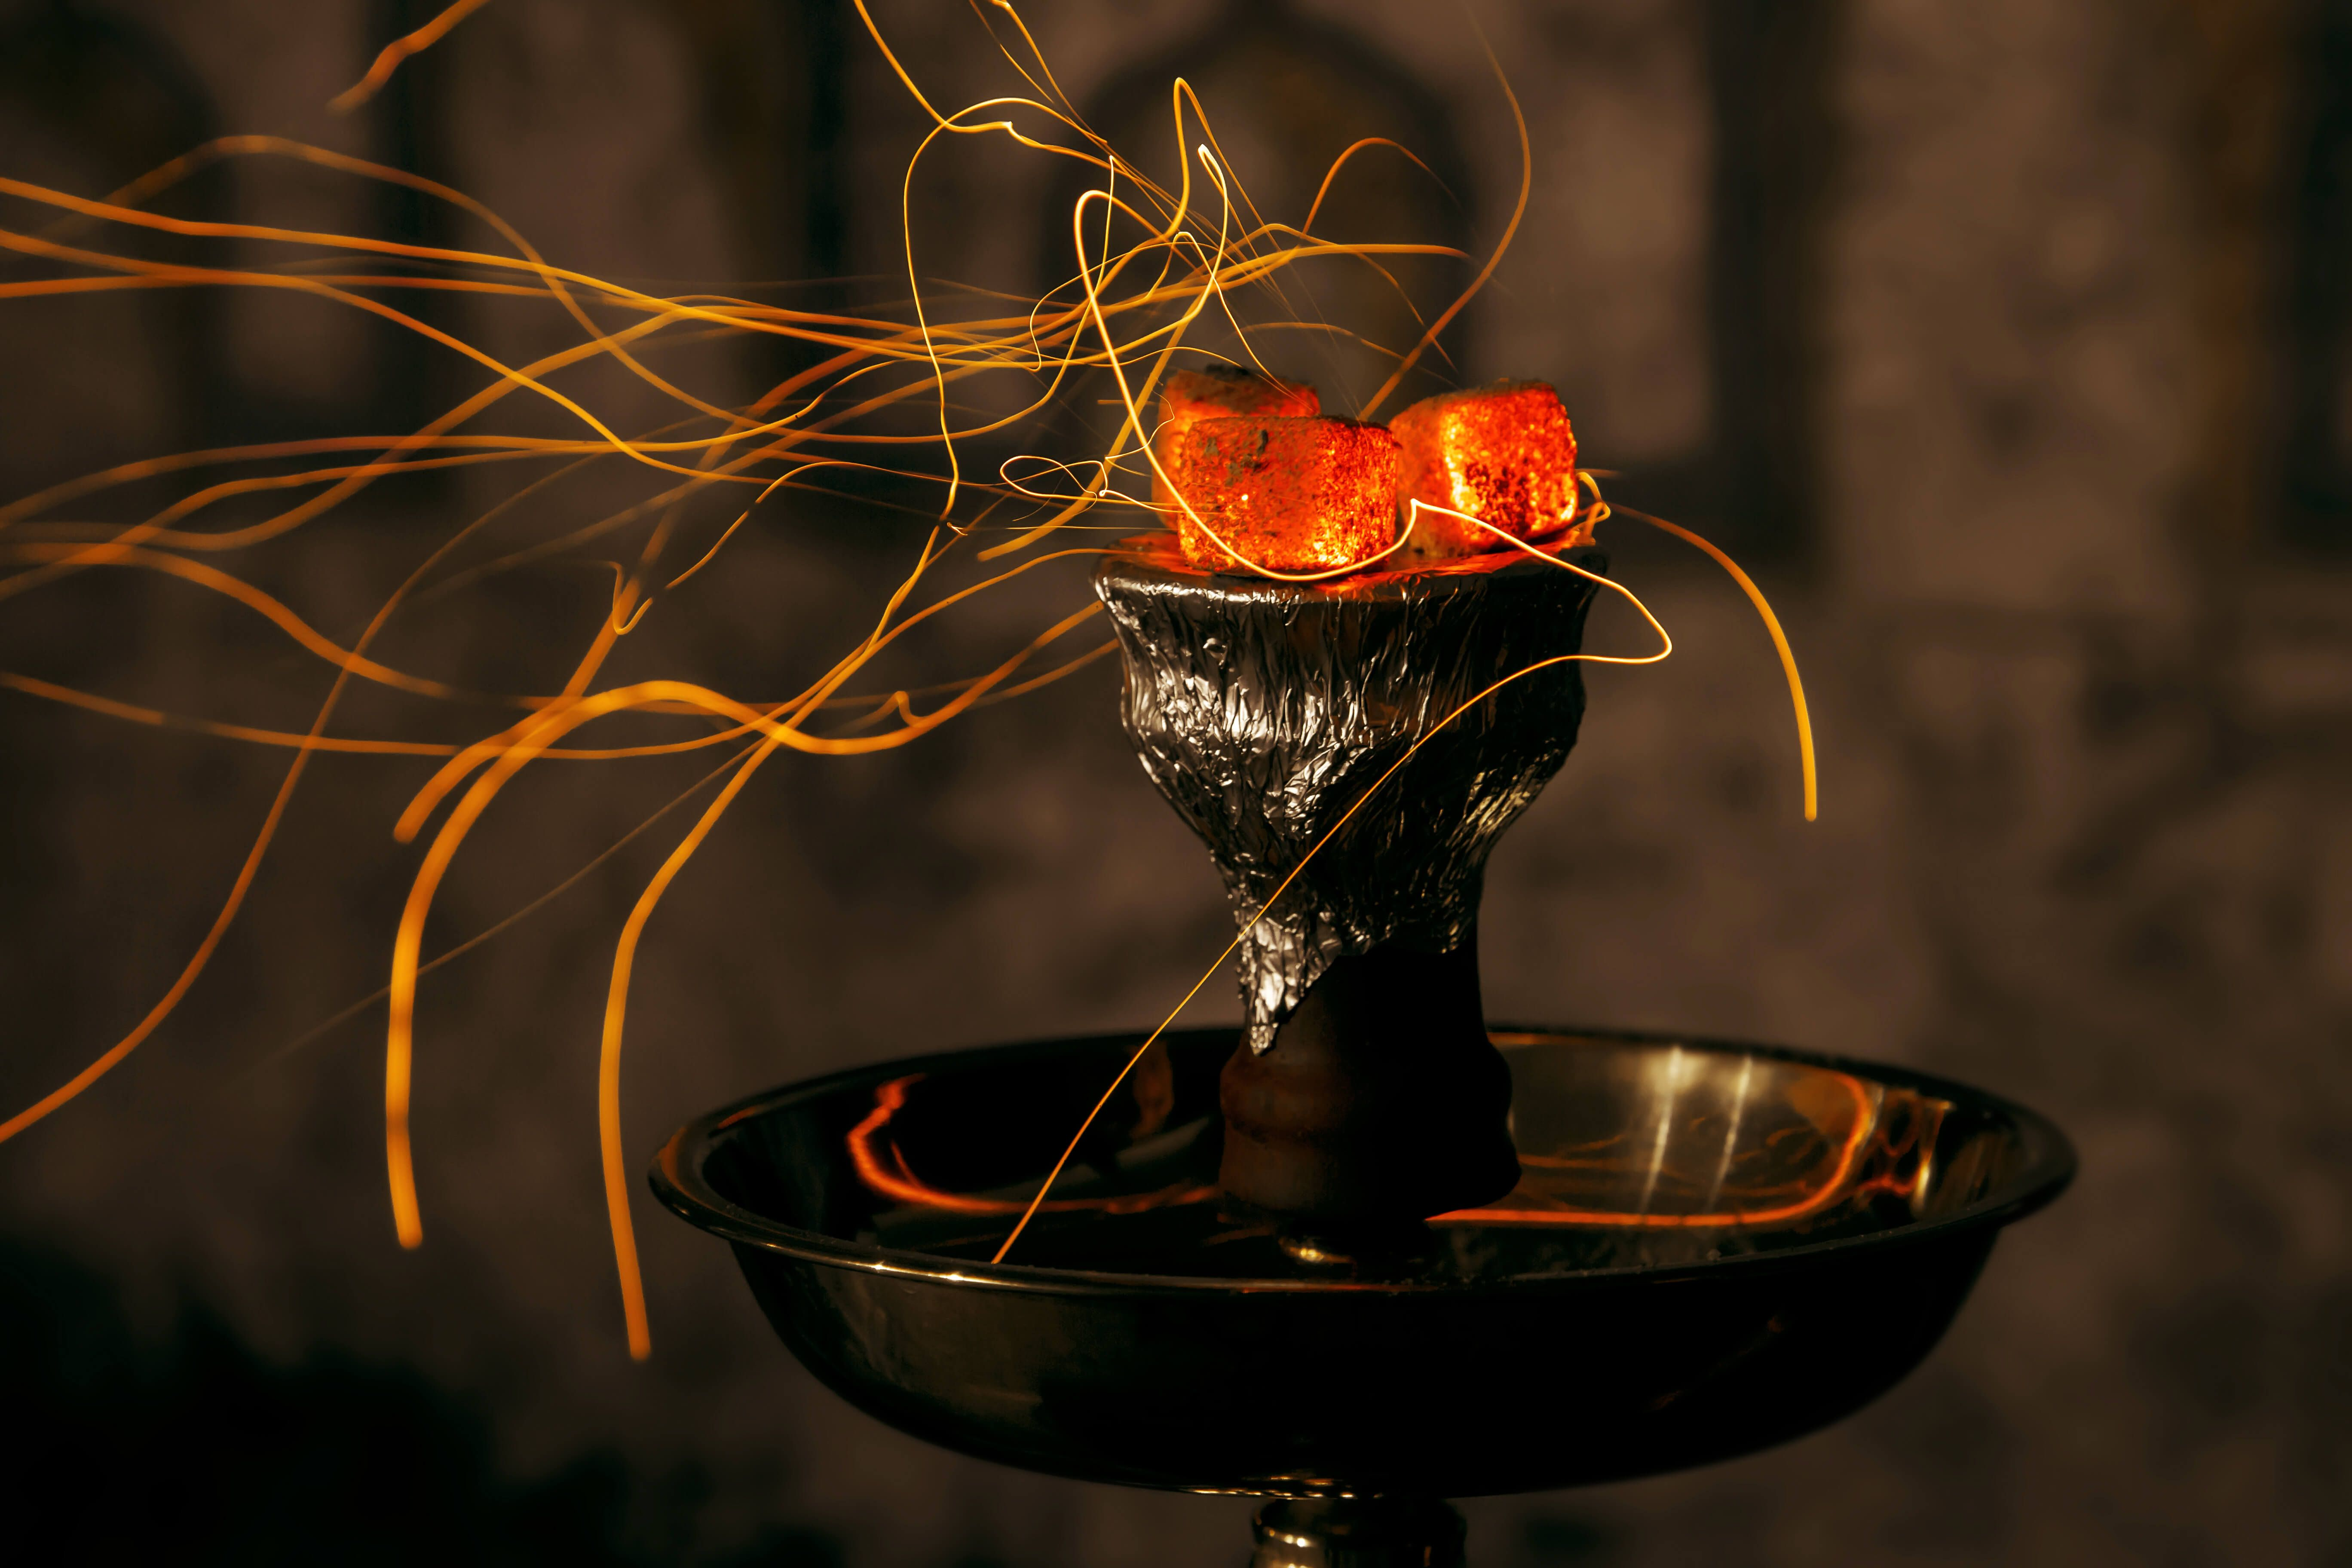 Pin on Great Hookah / Shisha Pictures